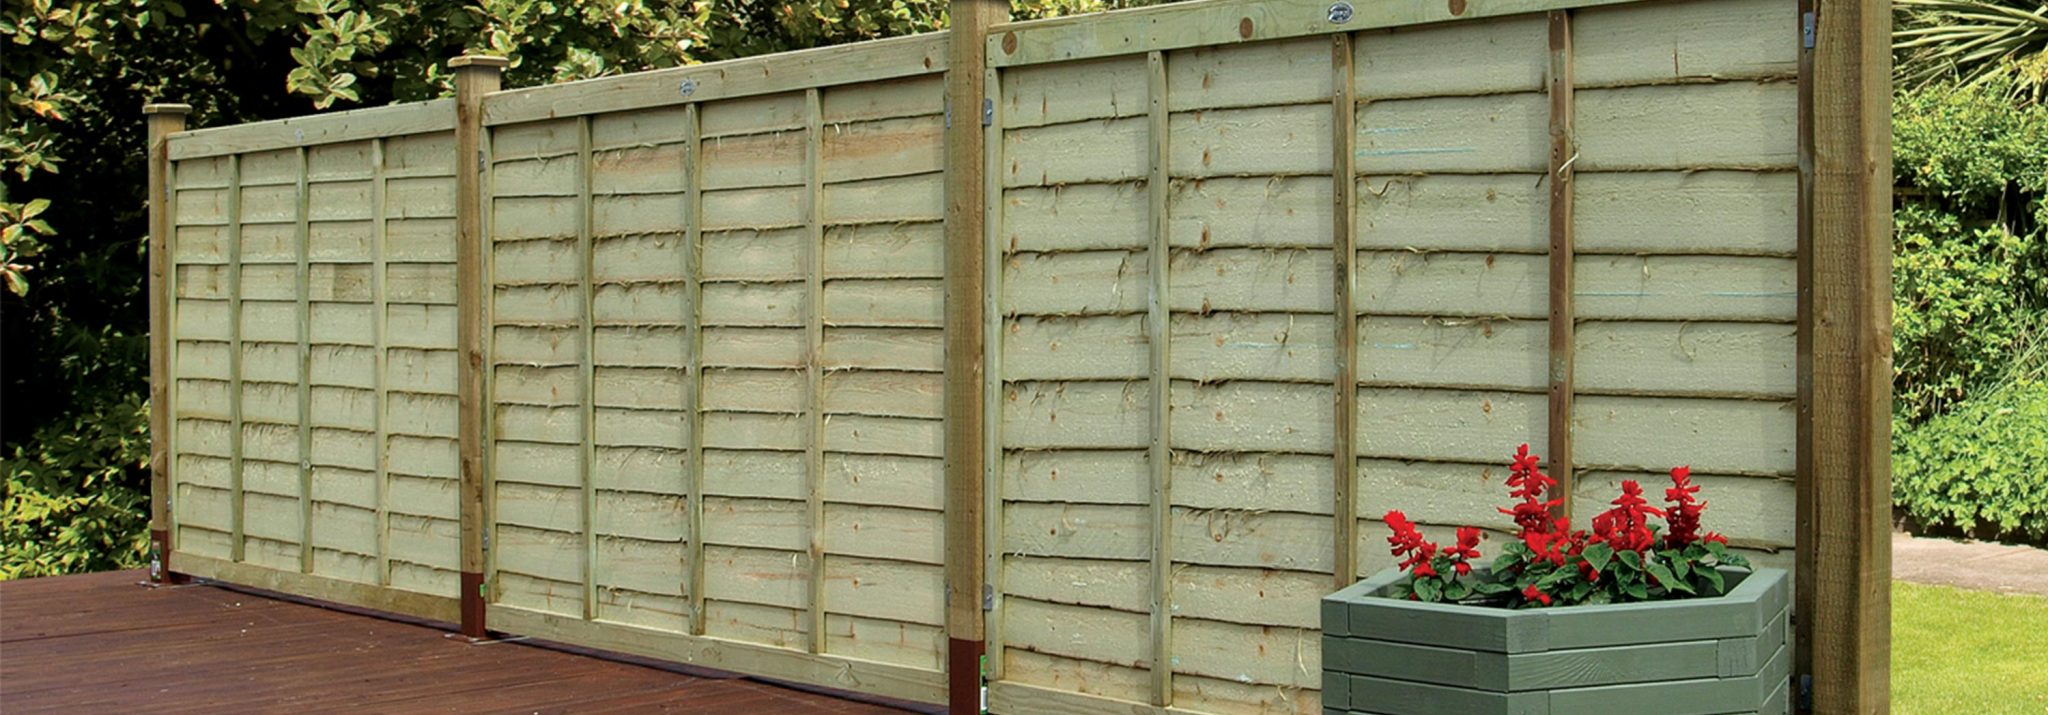 Waney edge fencing